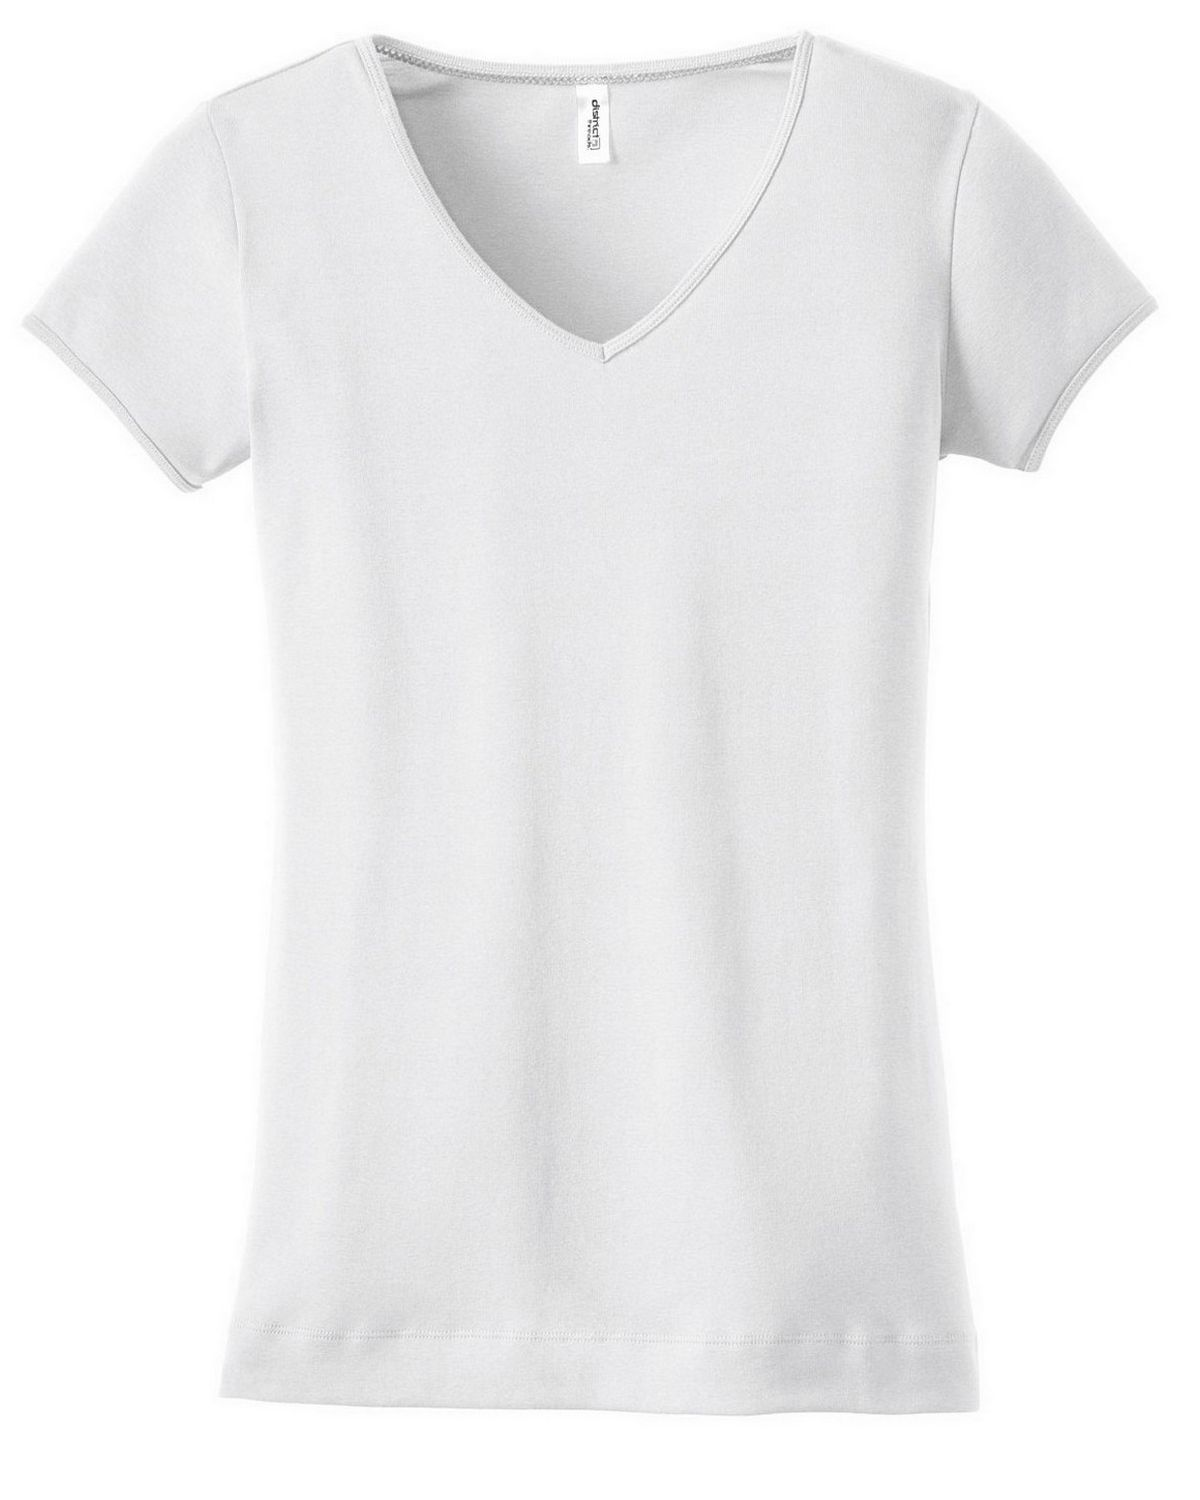 District DT234V Juniors Rib V-Neck Tee - Bright White - M DT234V